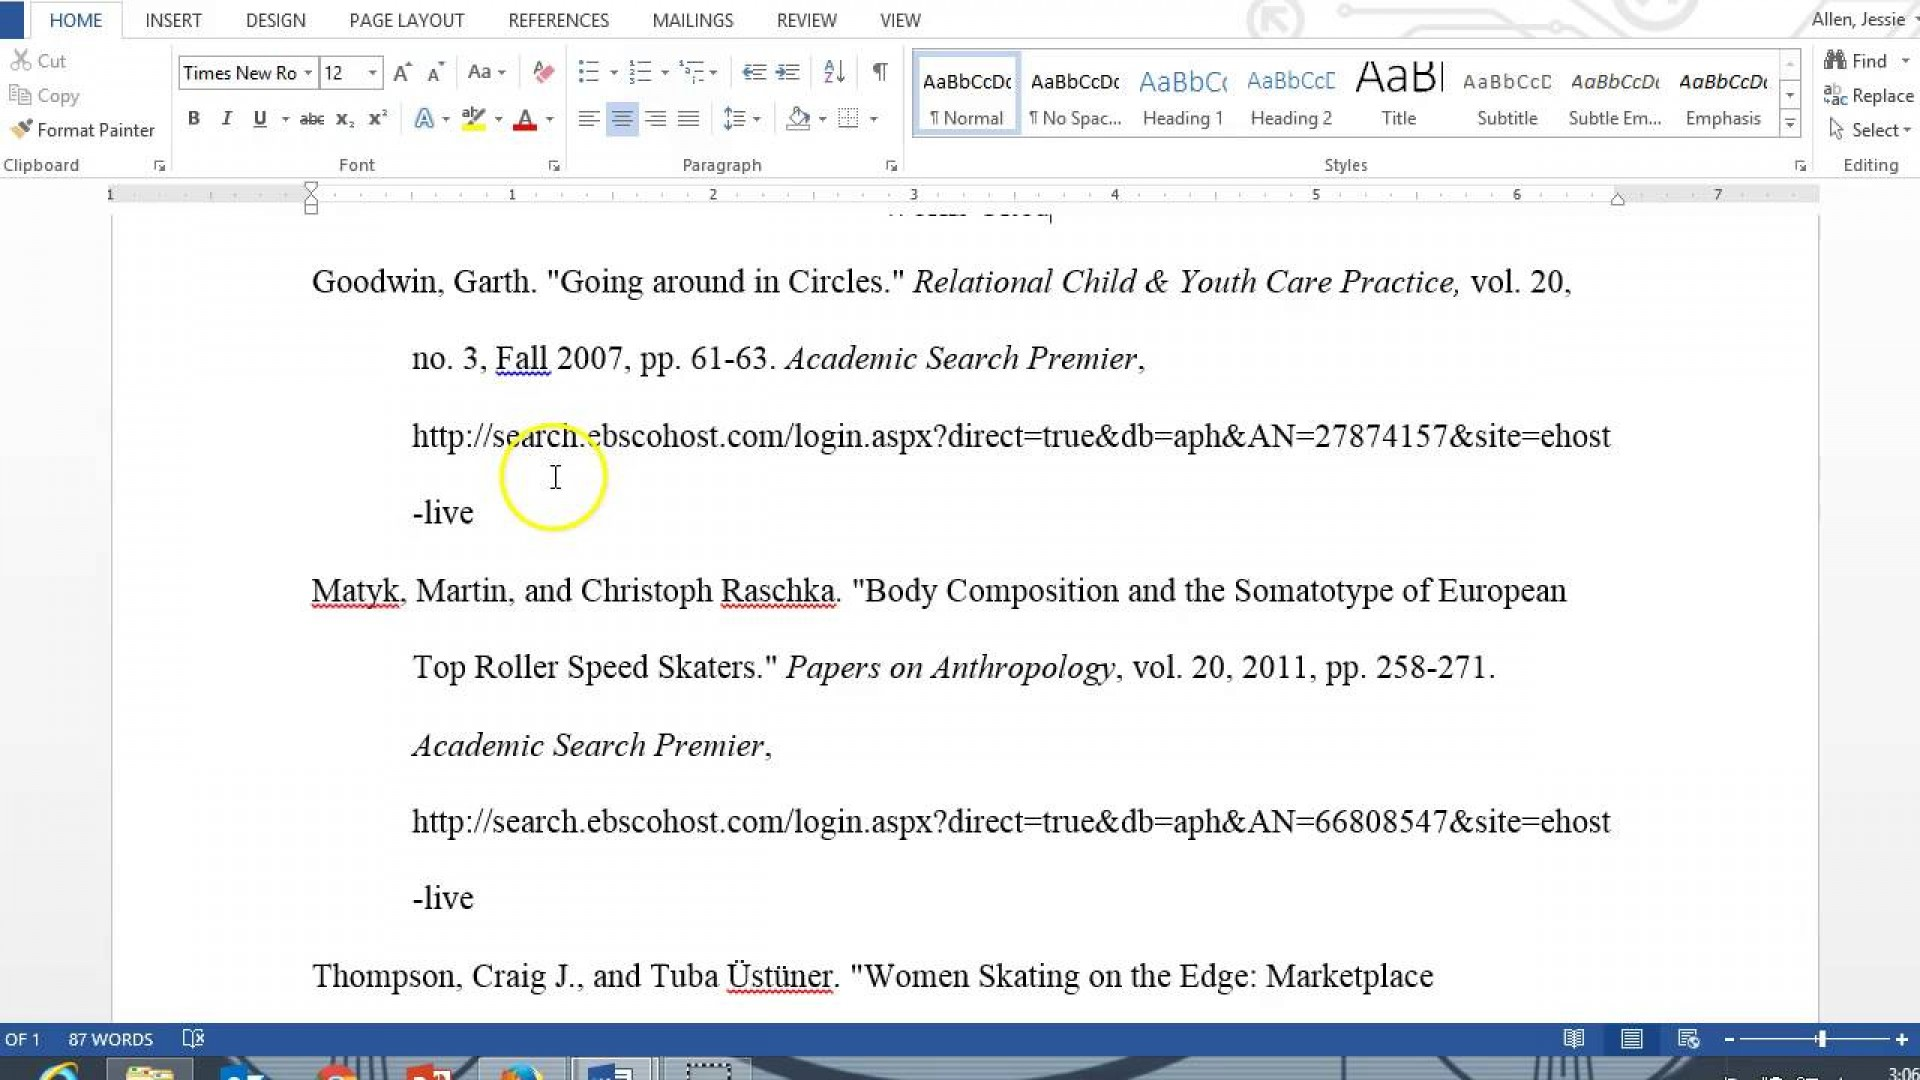 019 Maxresdefault How To Cite An Essay In Book Mla Best A Article Style 8 1920